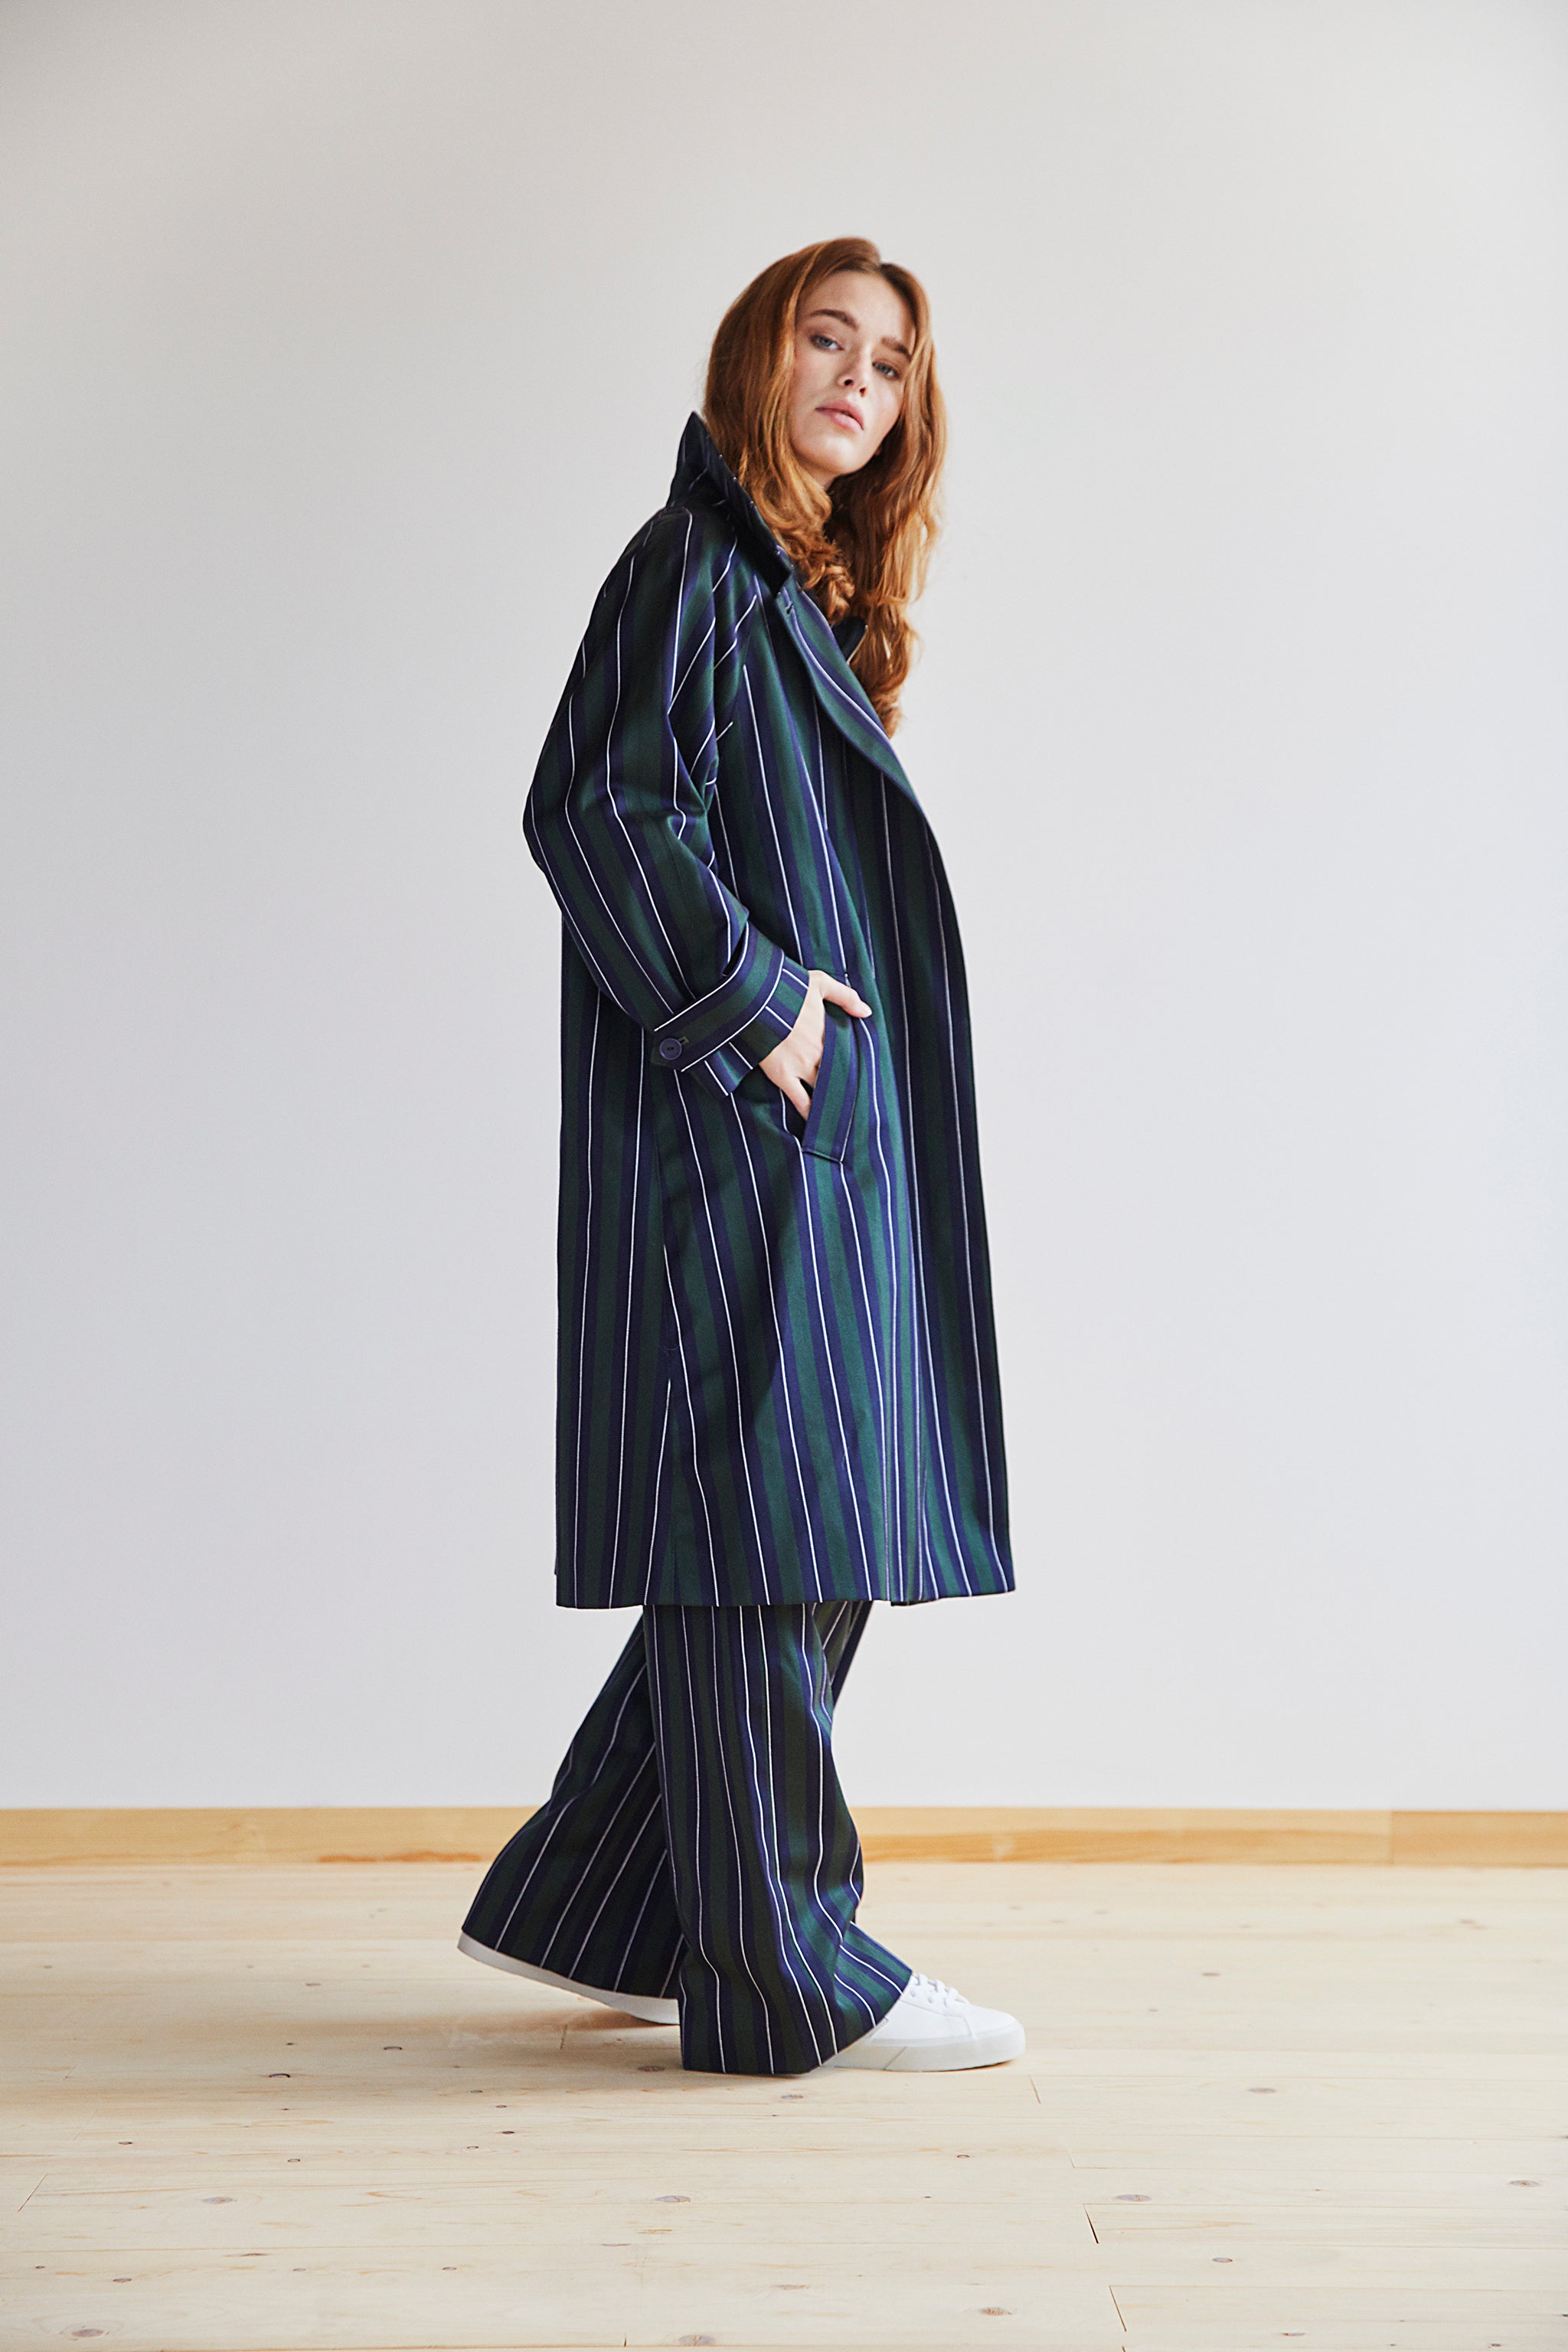 Amaury Coat in Green, Navy and White Stripe - Alice Early